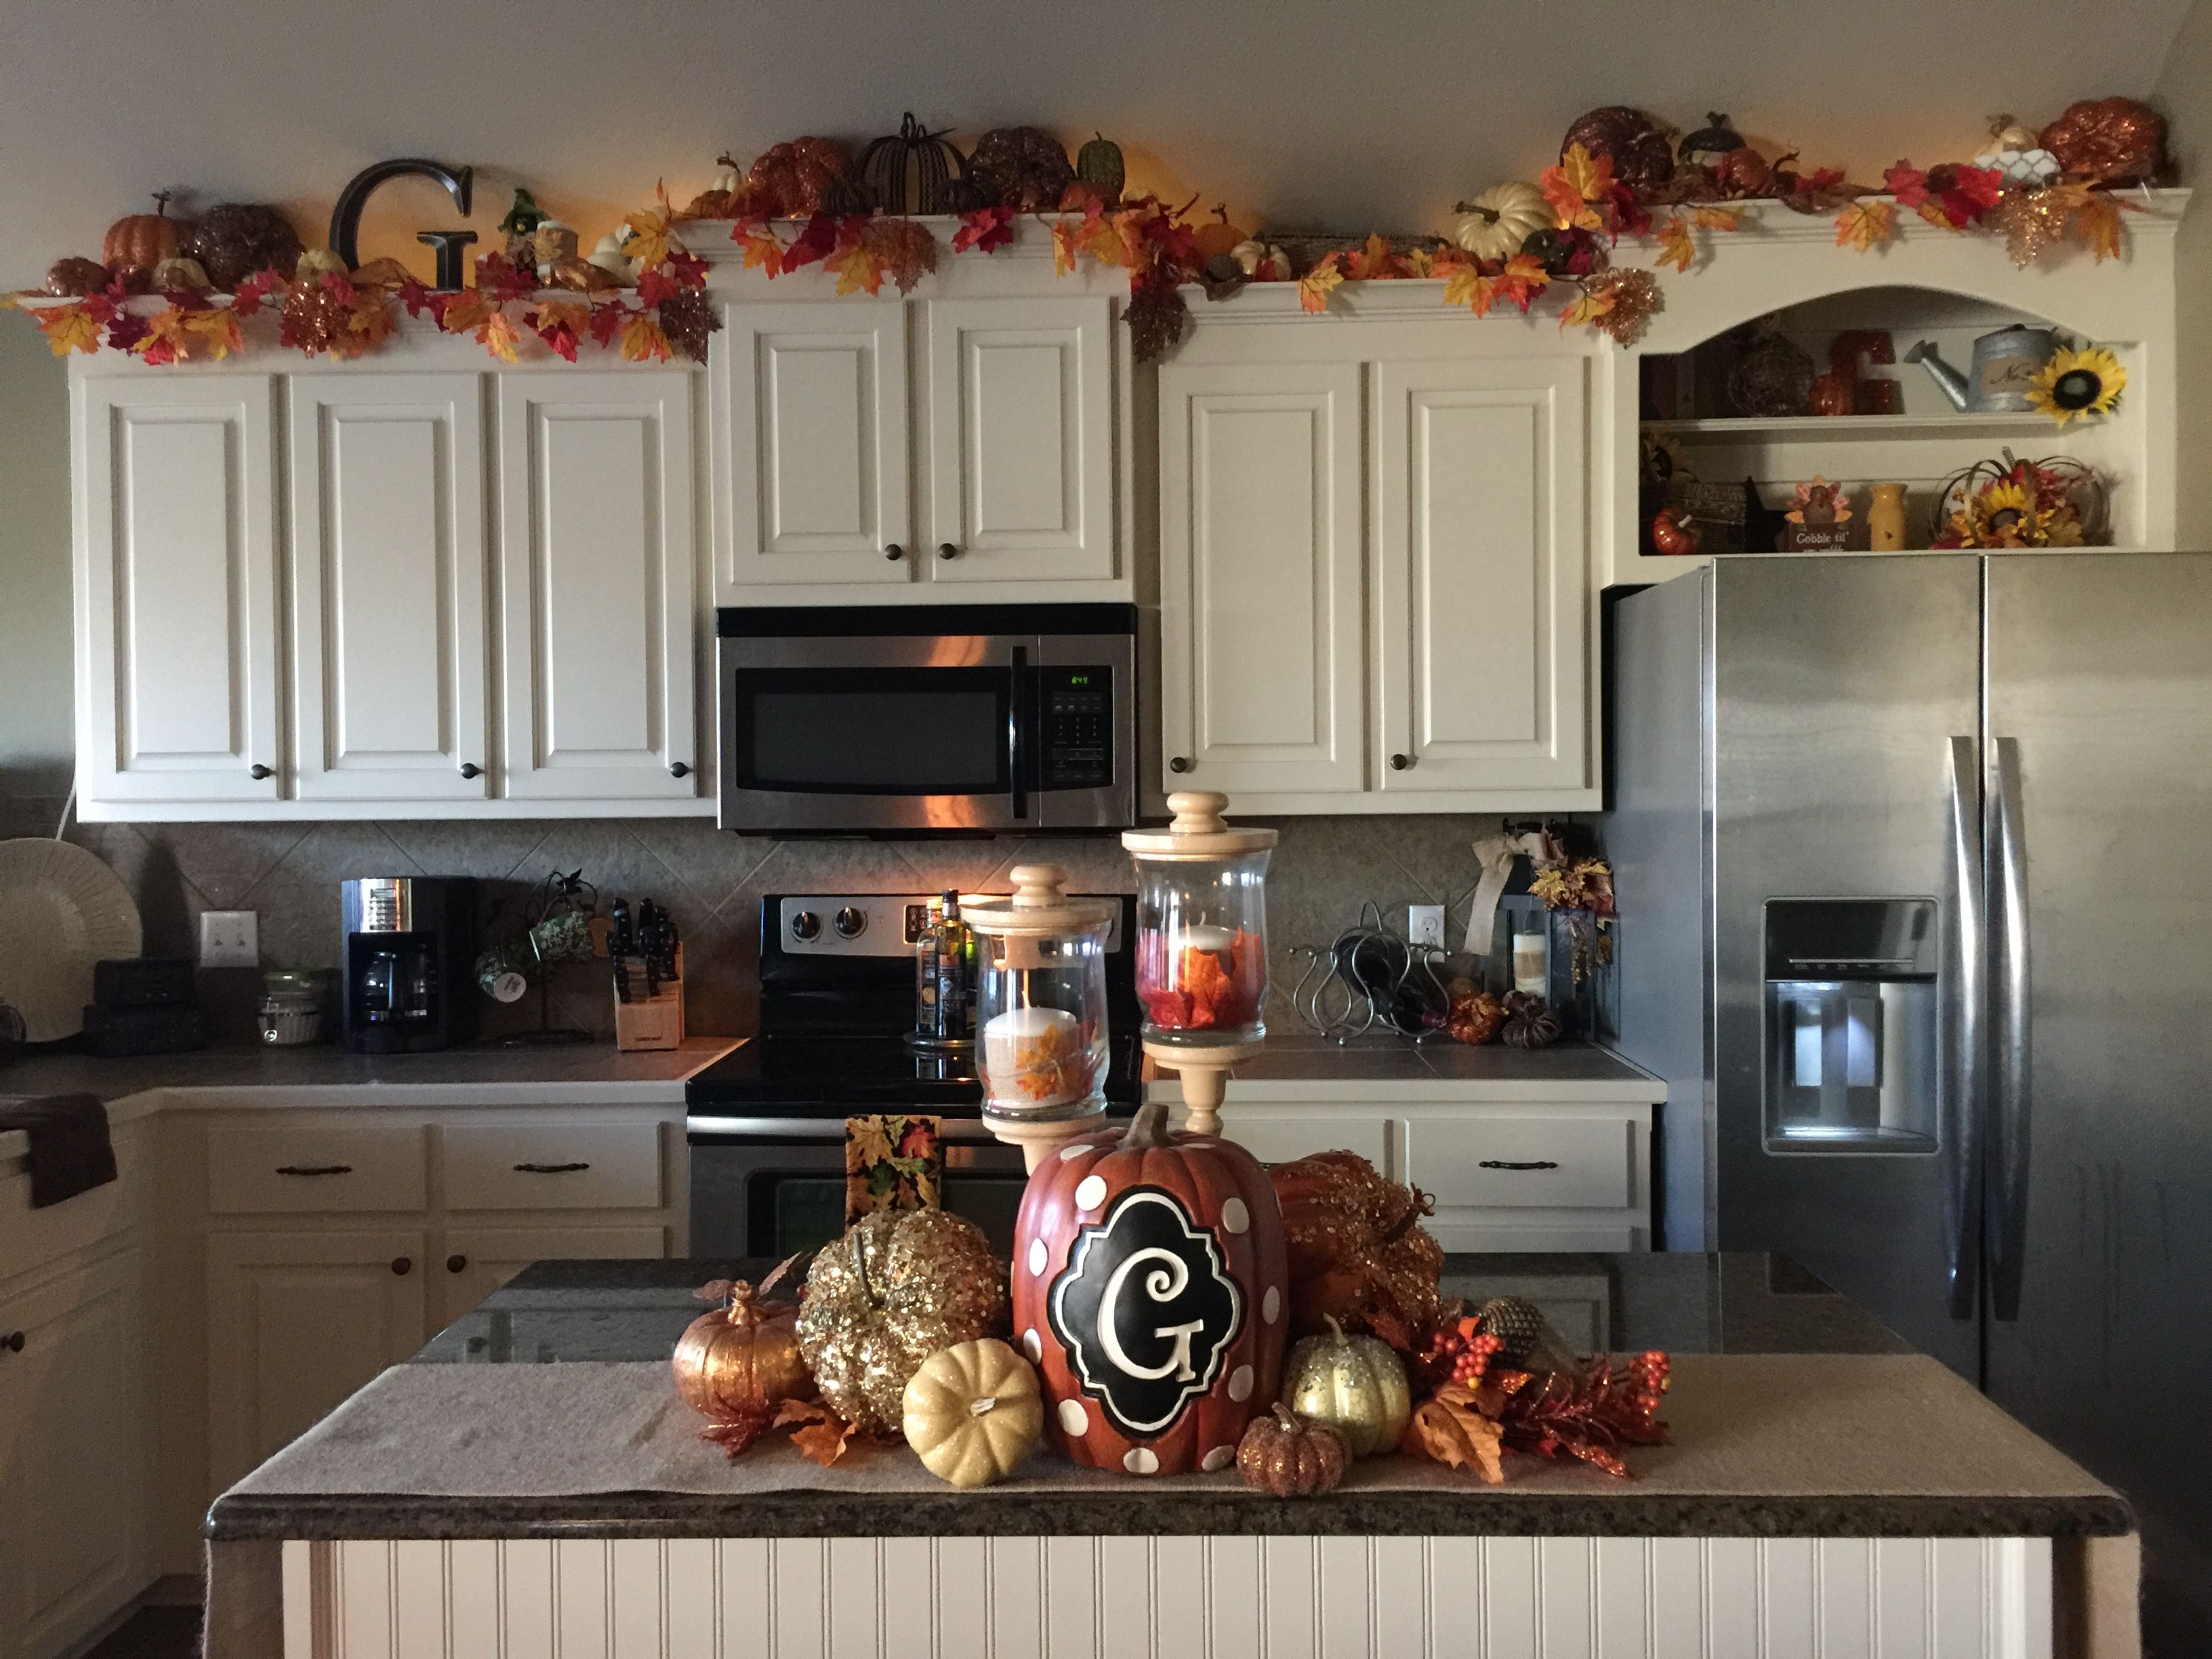 Starter Home Fall Decor Small Kitchen Fall Decorations Above